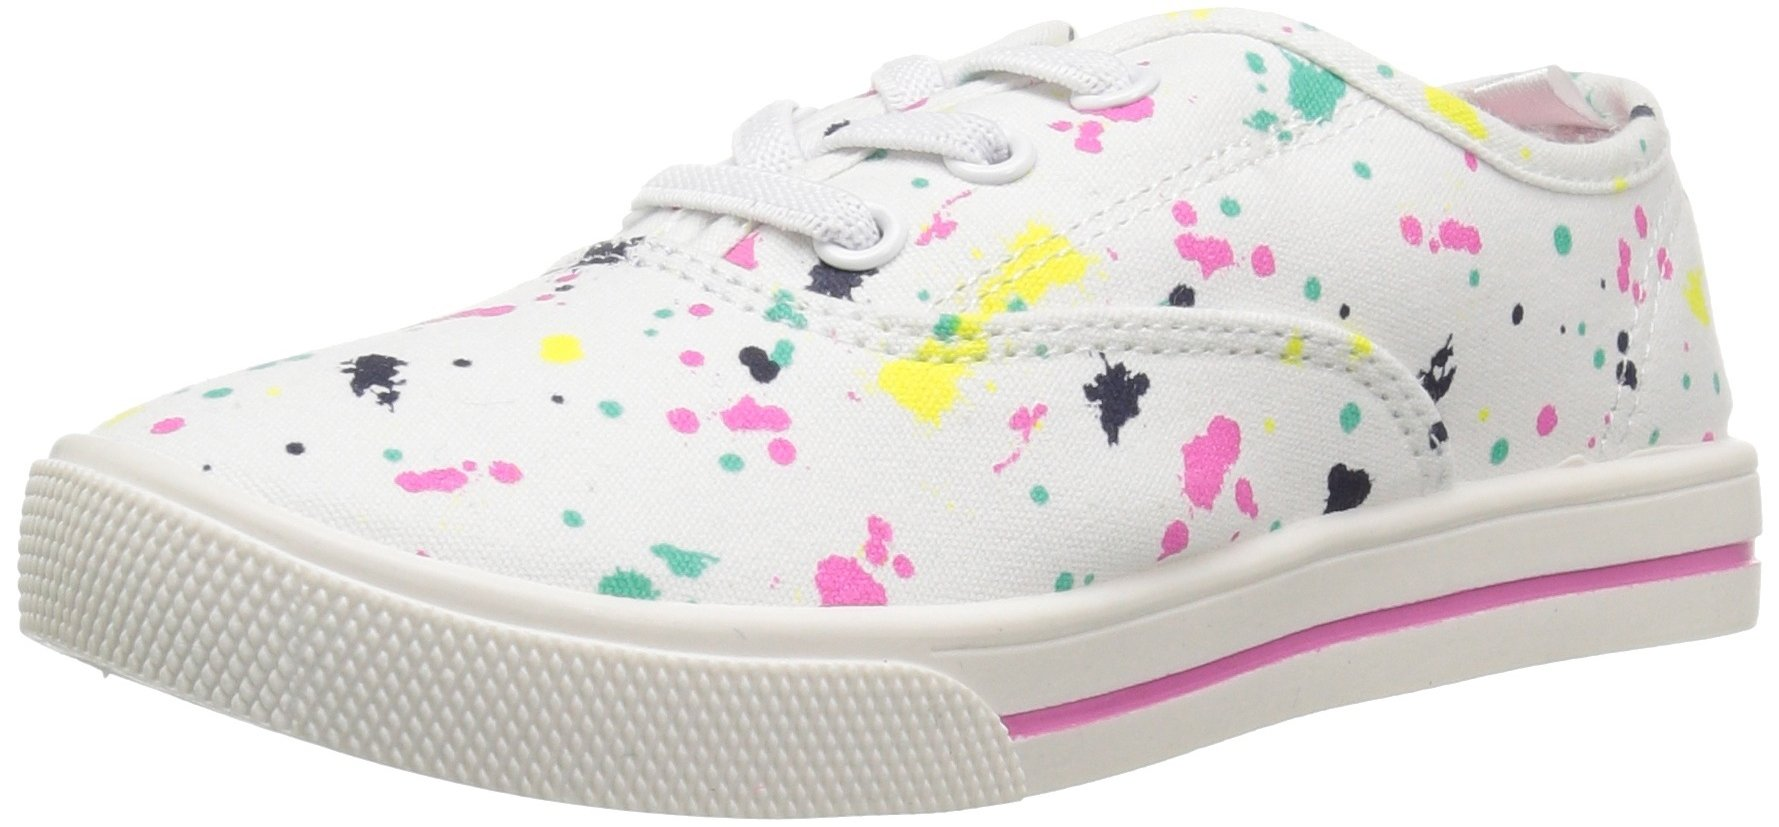 Carter's Piper Girl's Casual Sneaker, White/Print, 3 M US Little Kid by Carter's (Image #1)